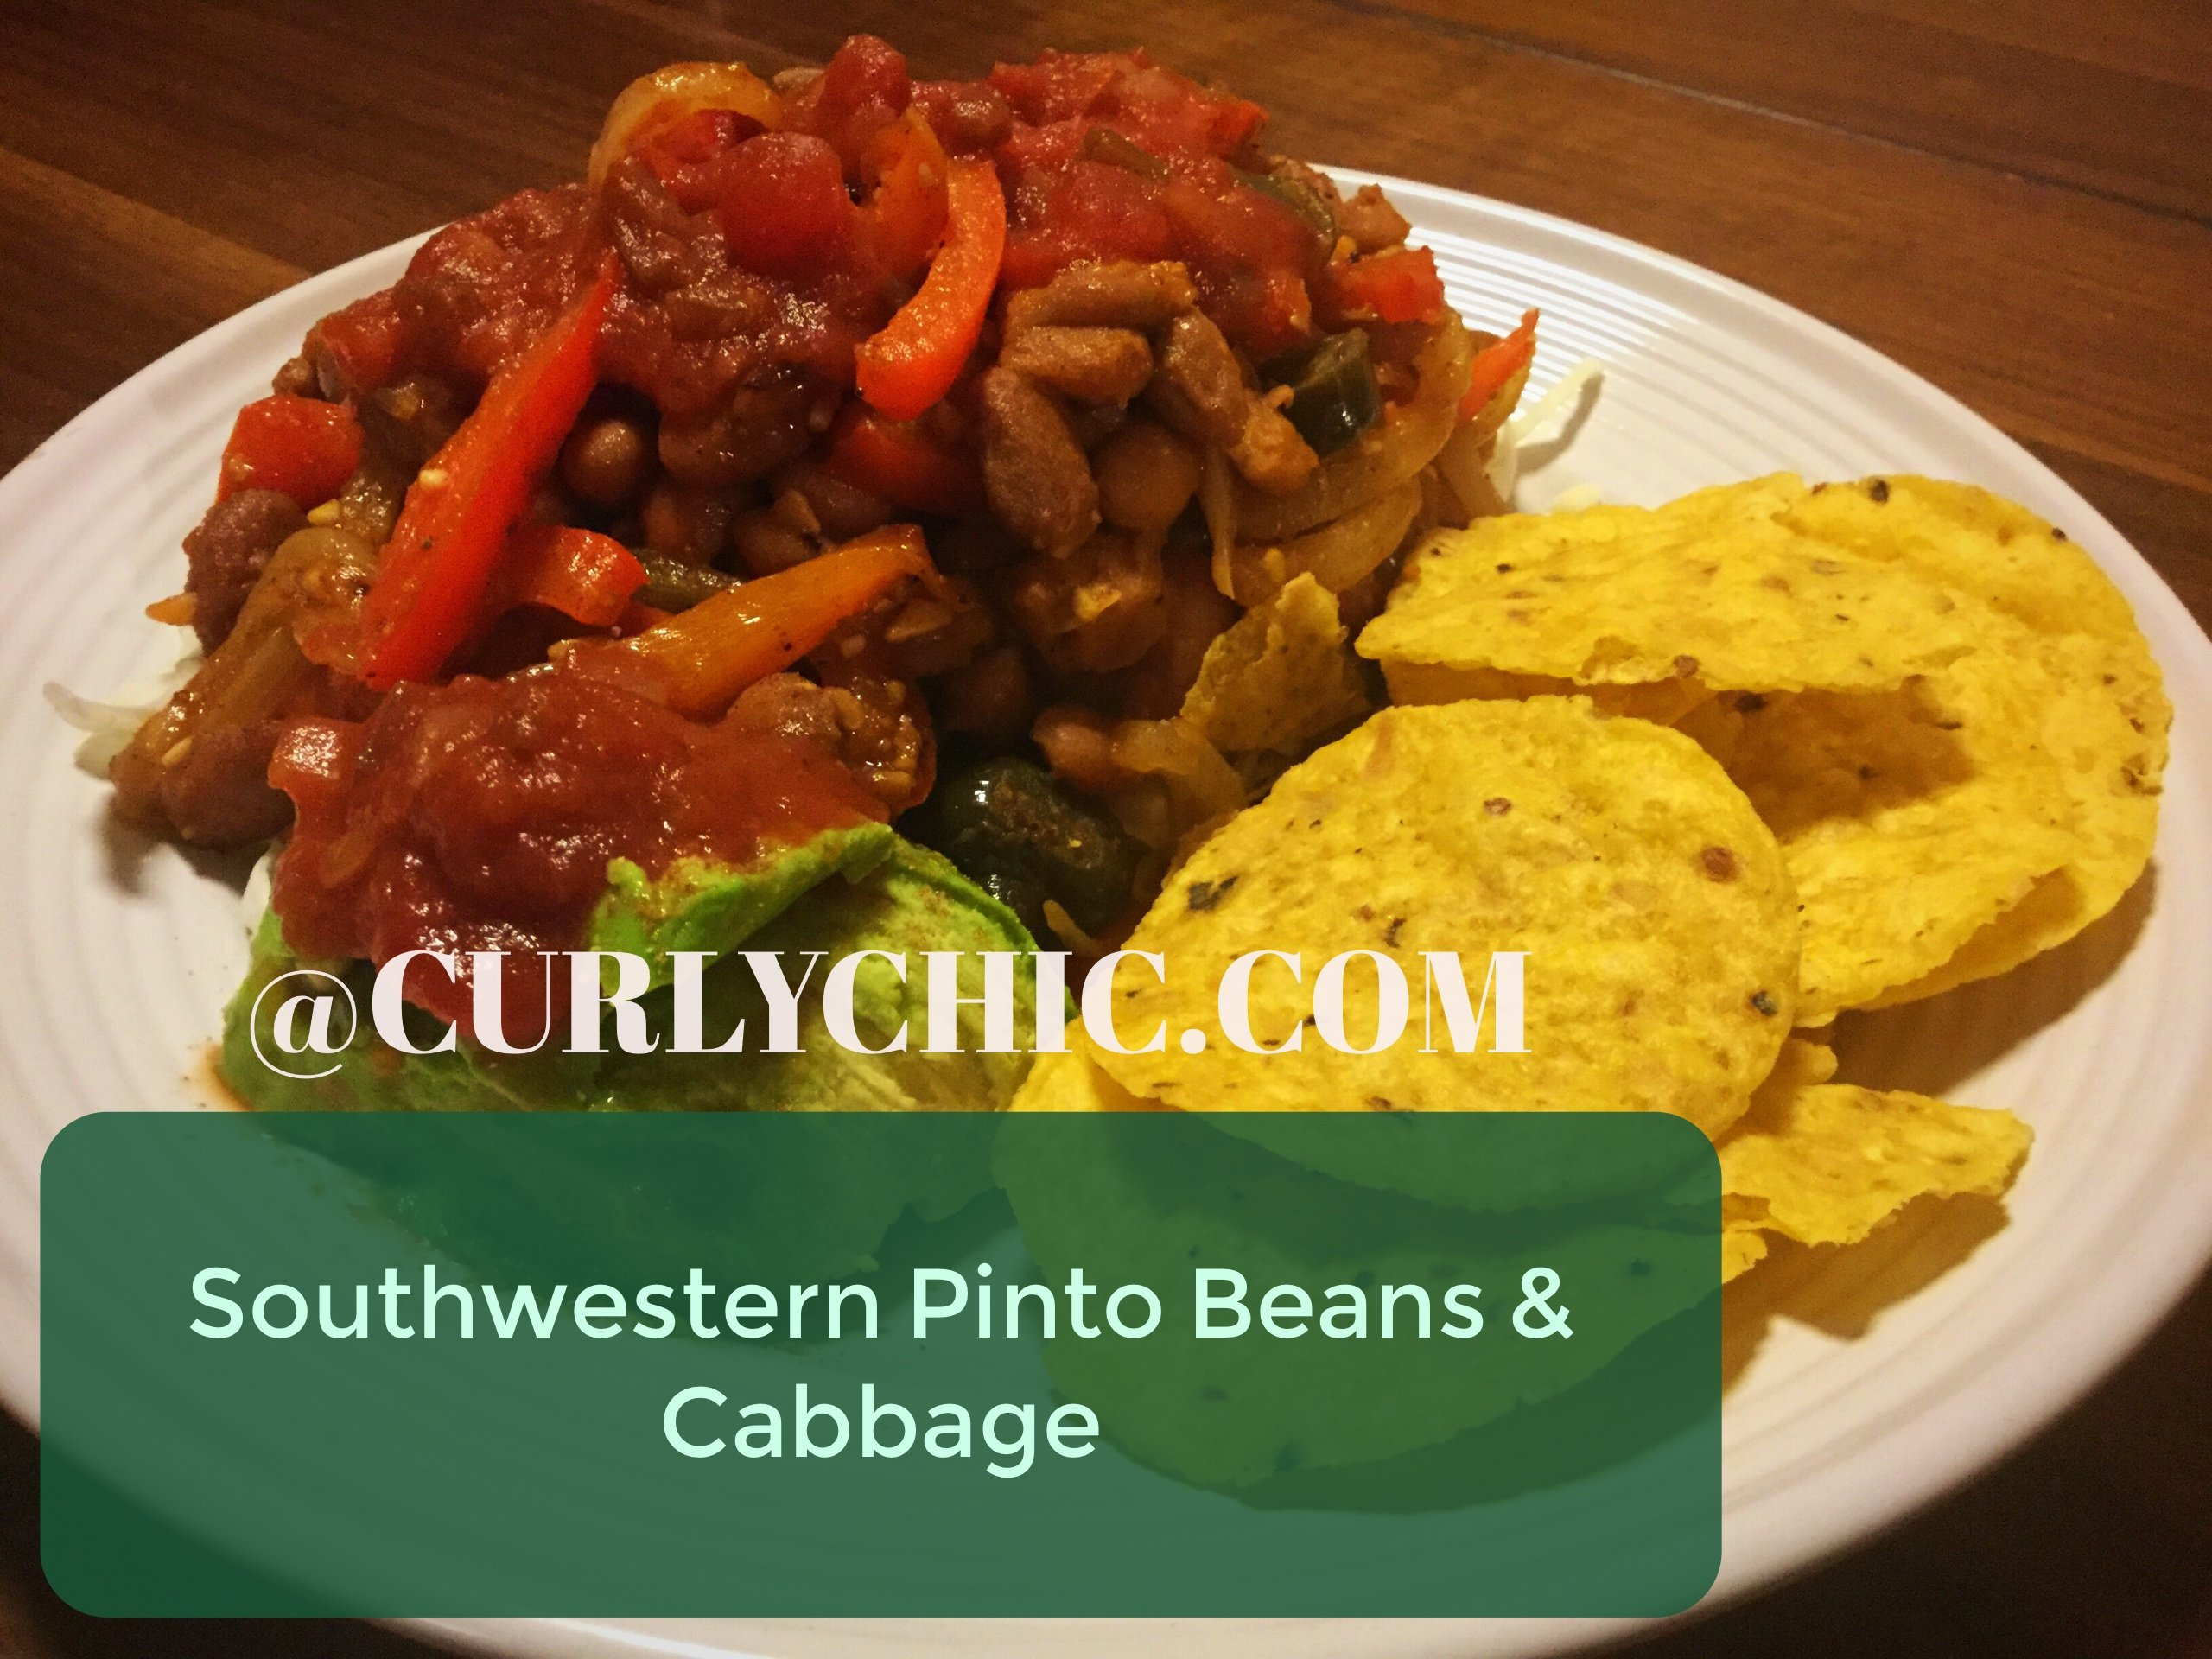 southwestern pinto beans & cabbage recipe